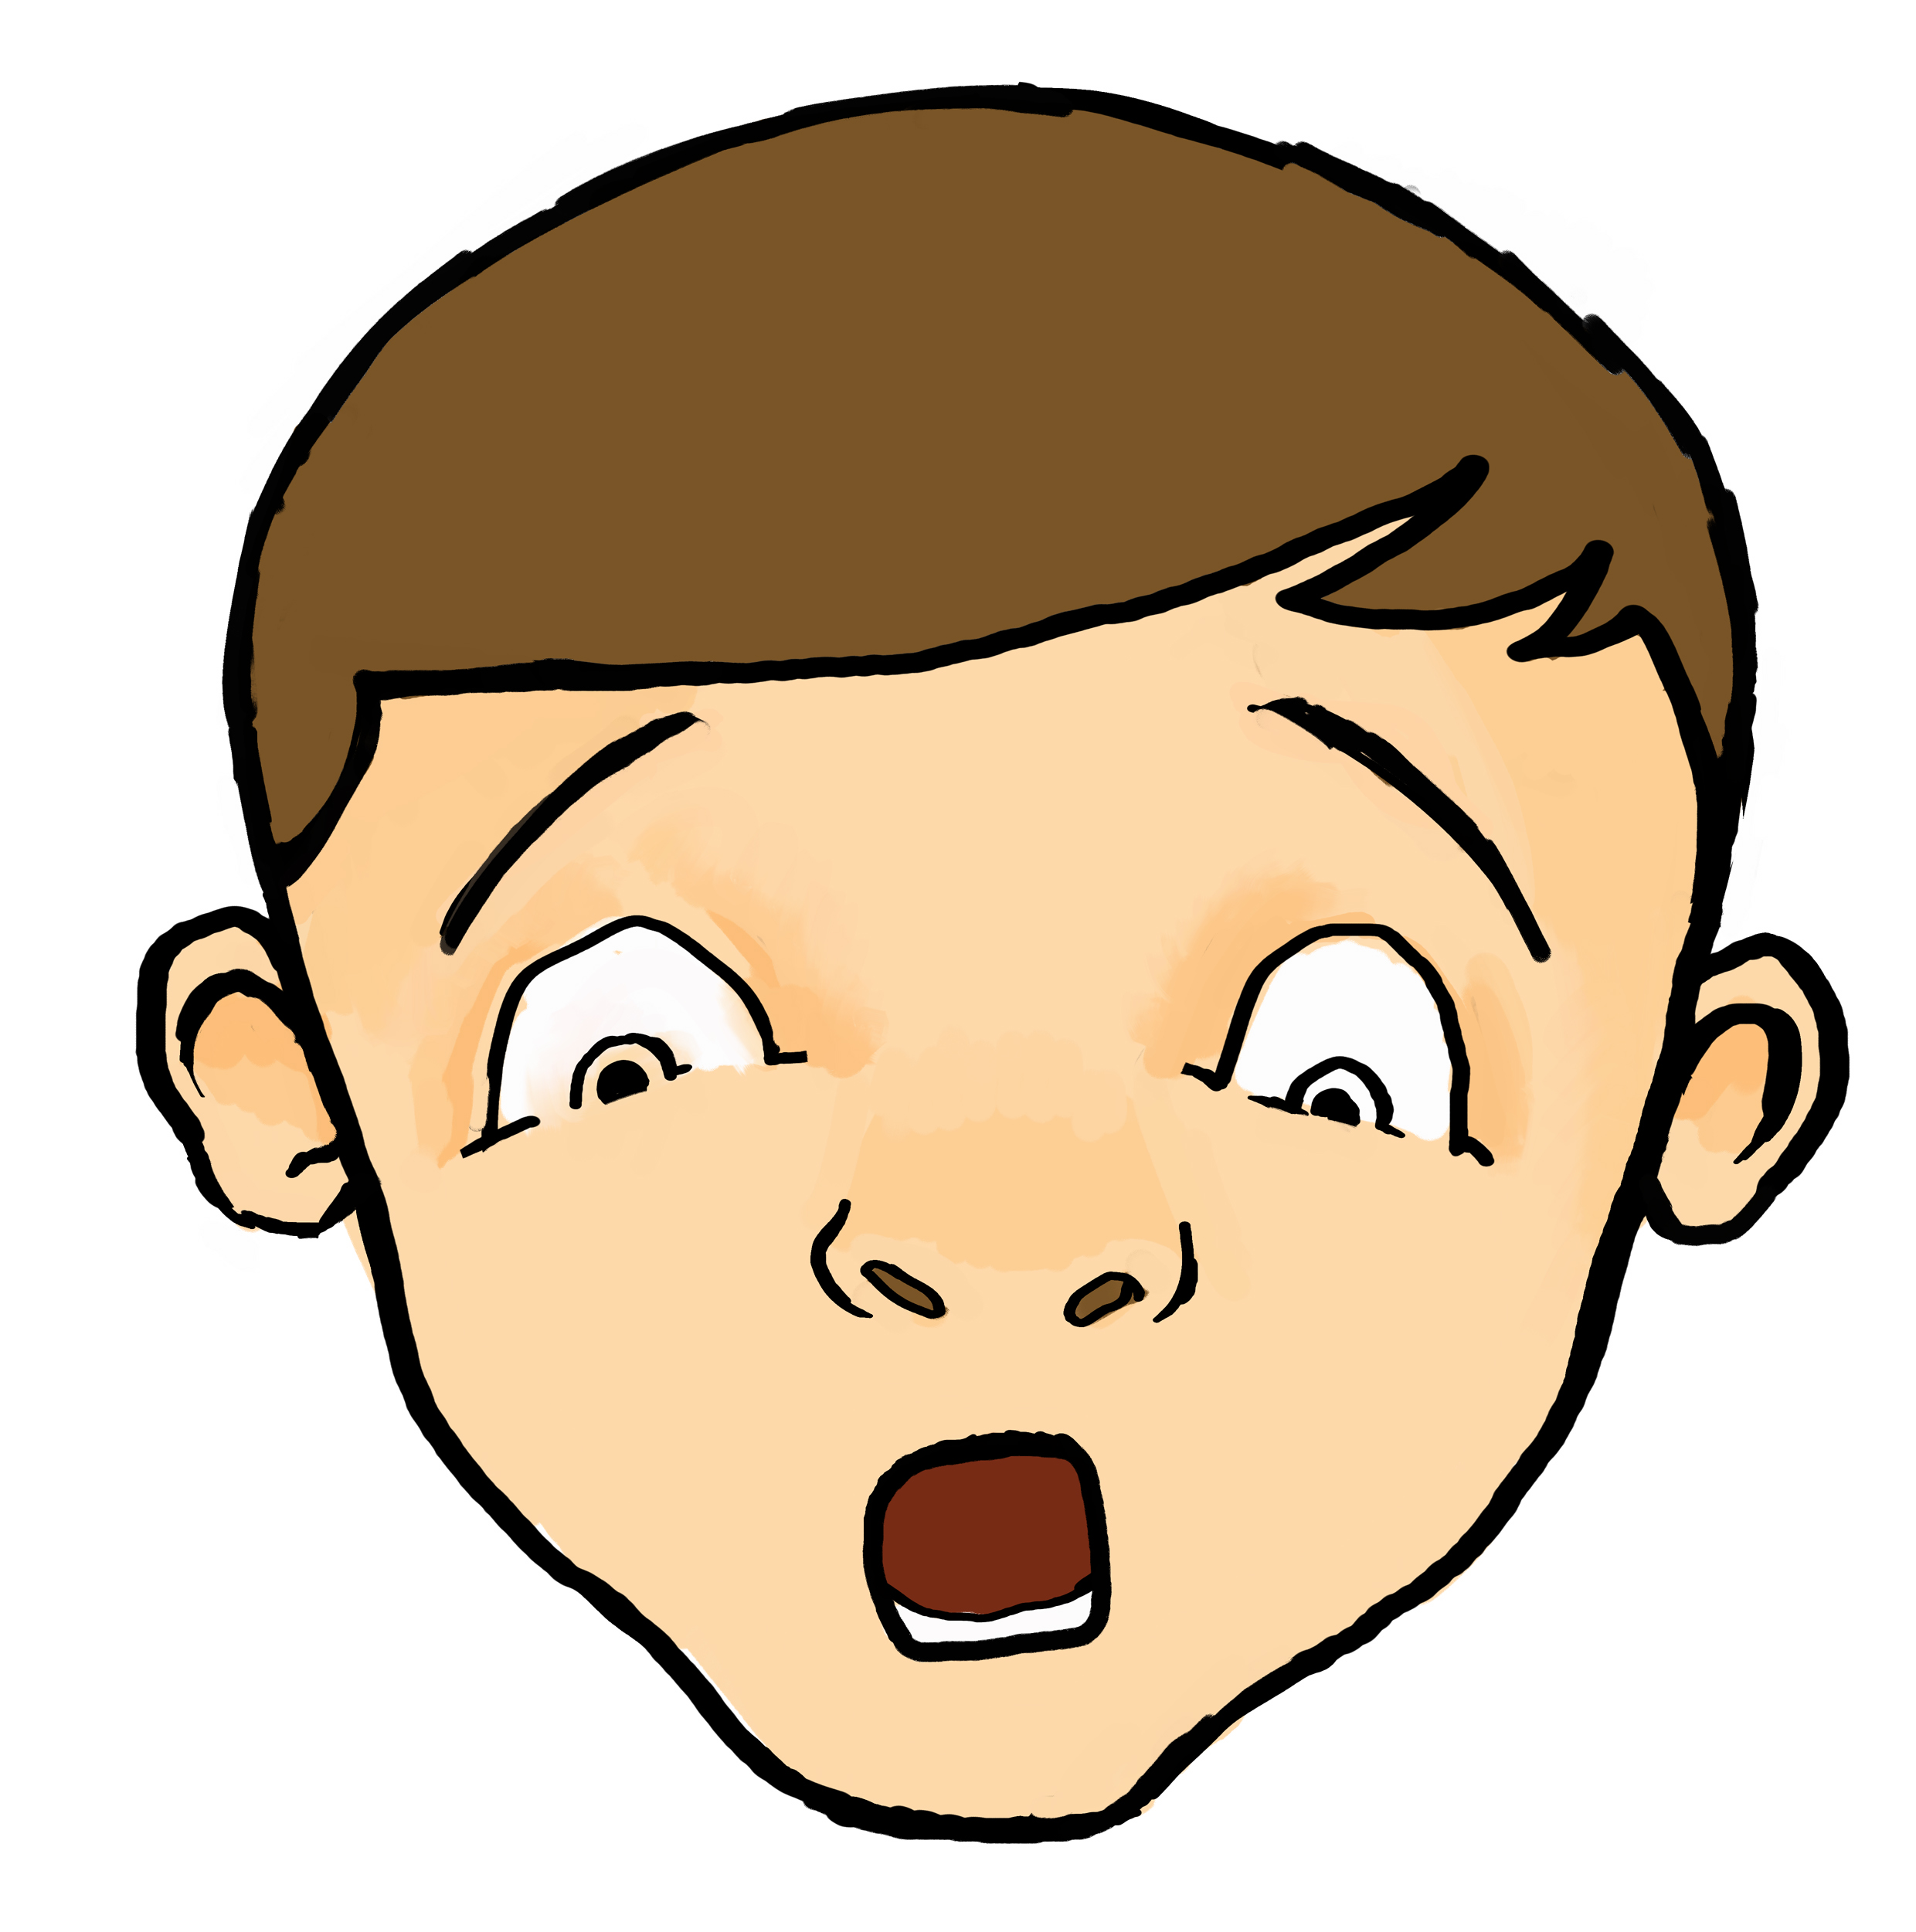 shocked face drawing at getdrawings com free for personal use rh getdrawings com shocked cartoon face gif cartoon pics of shocked faces